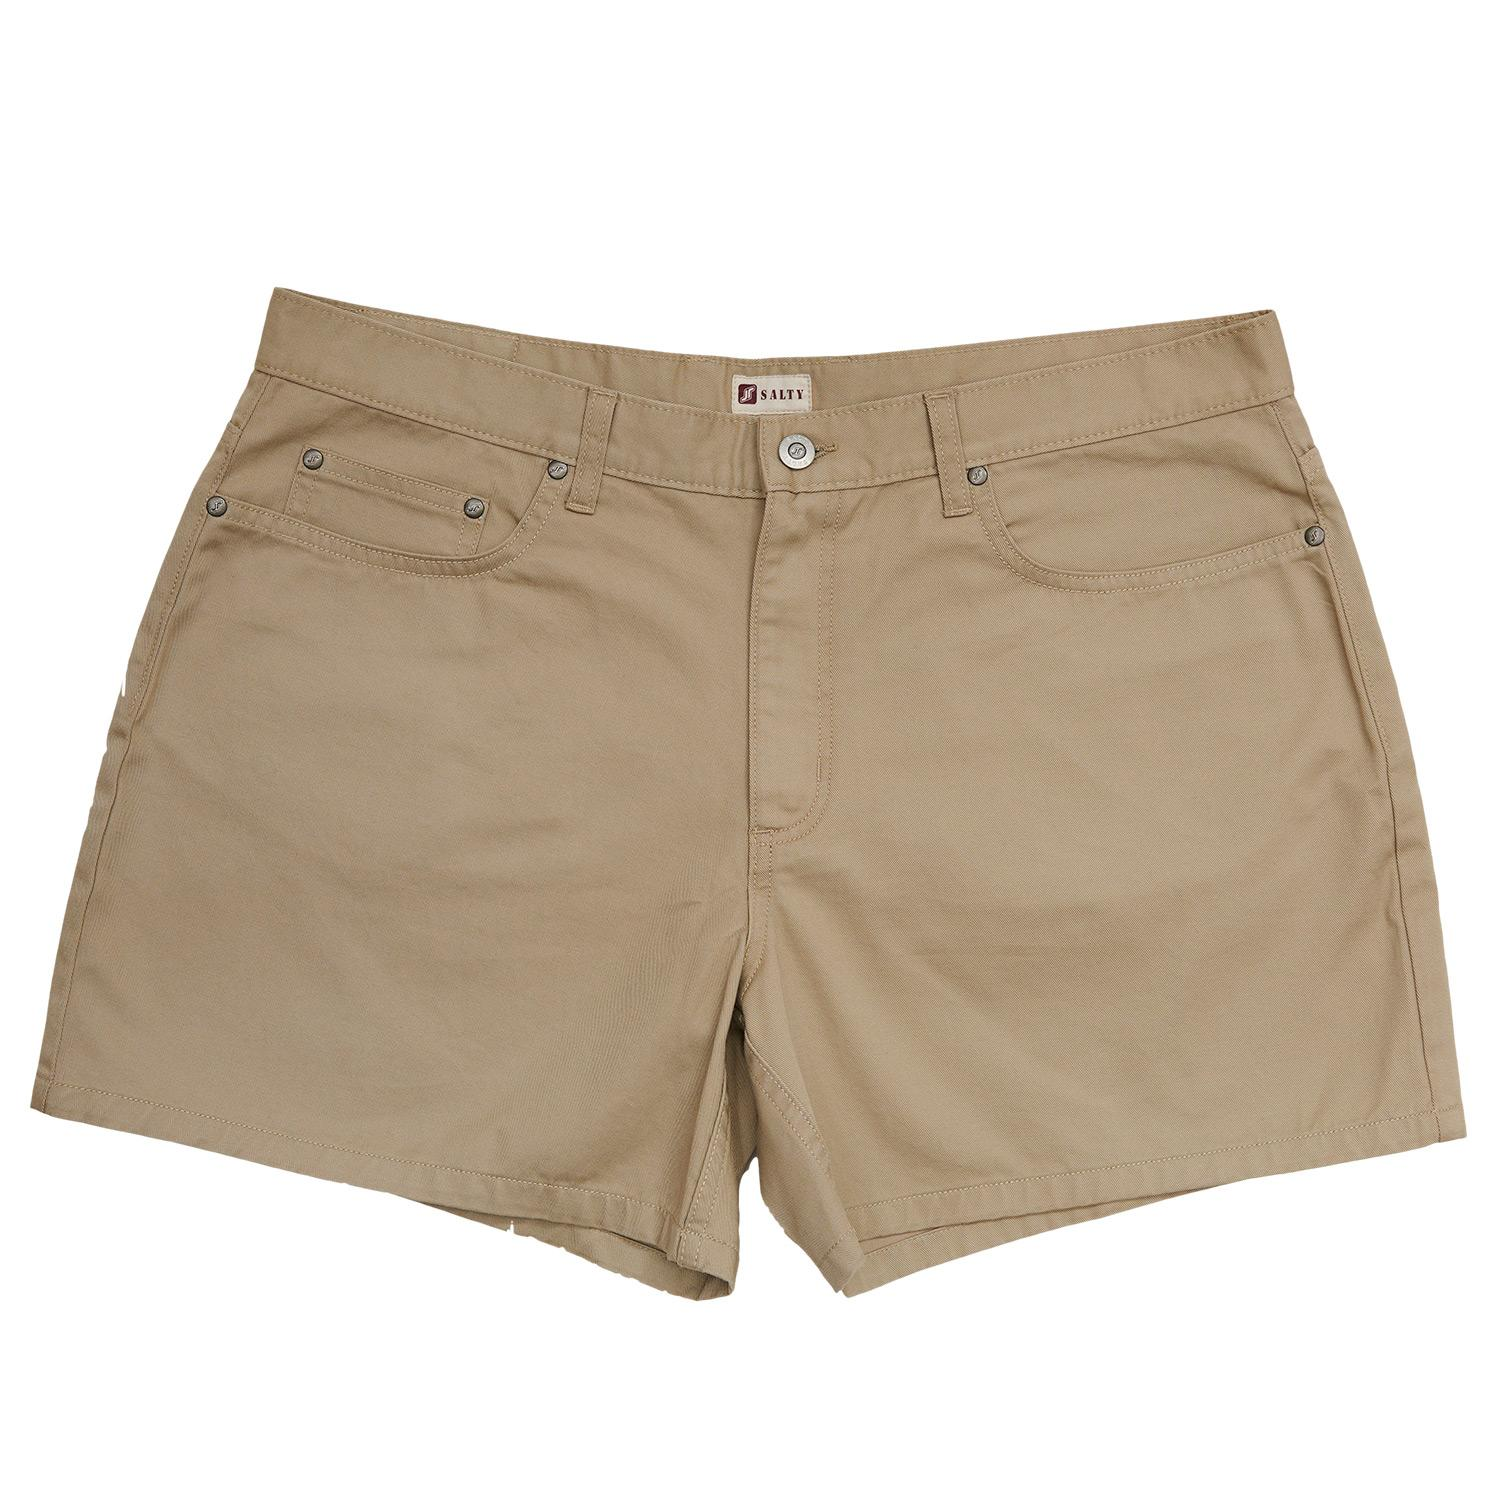 Salty Beige Heavy Duty 5 Pocket Short